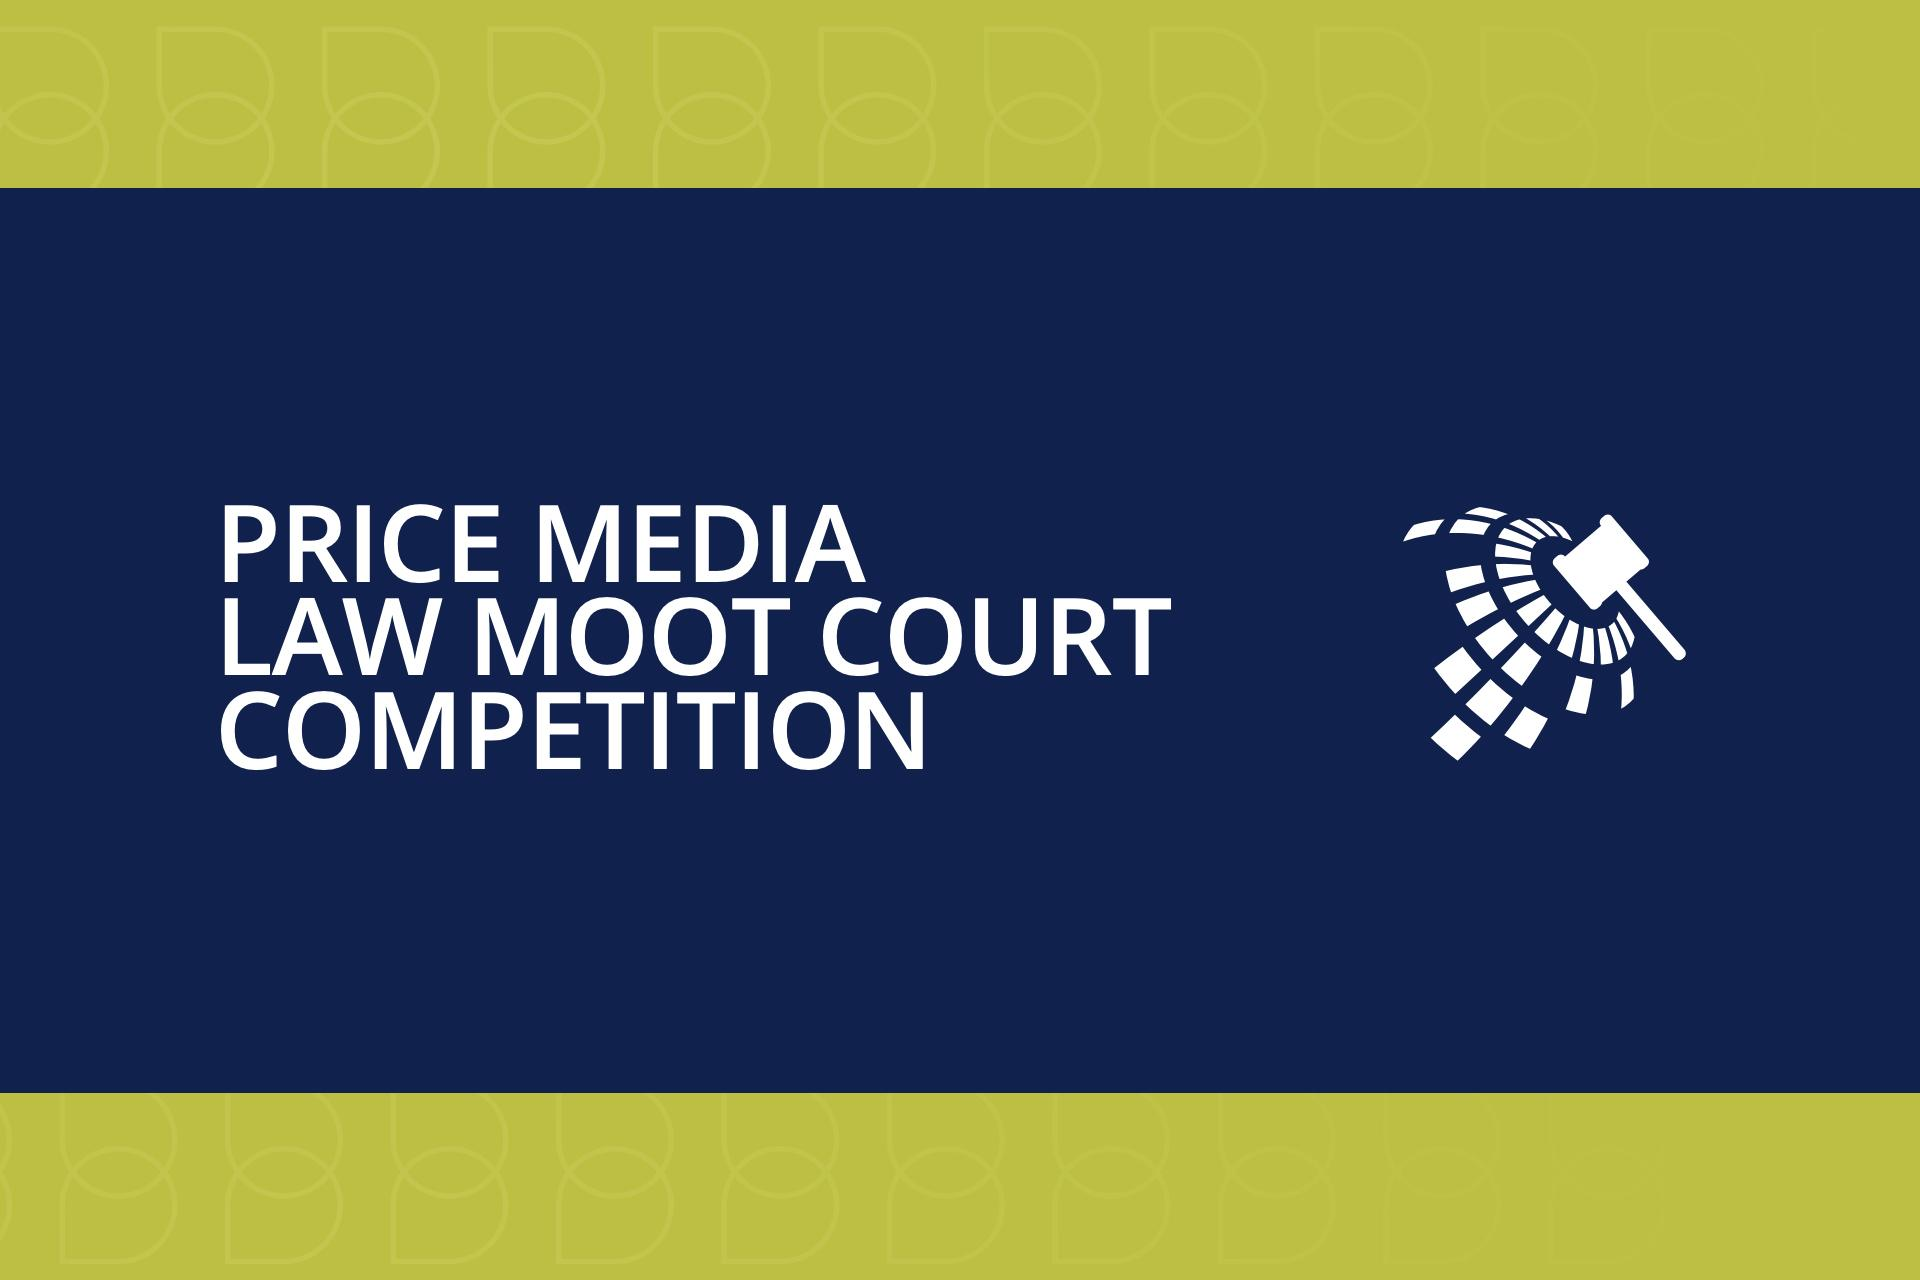 The Price Media Law Moot Court Competition